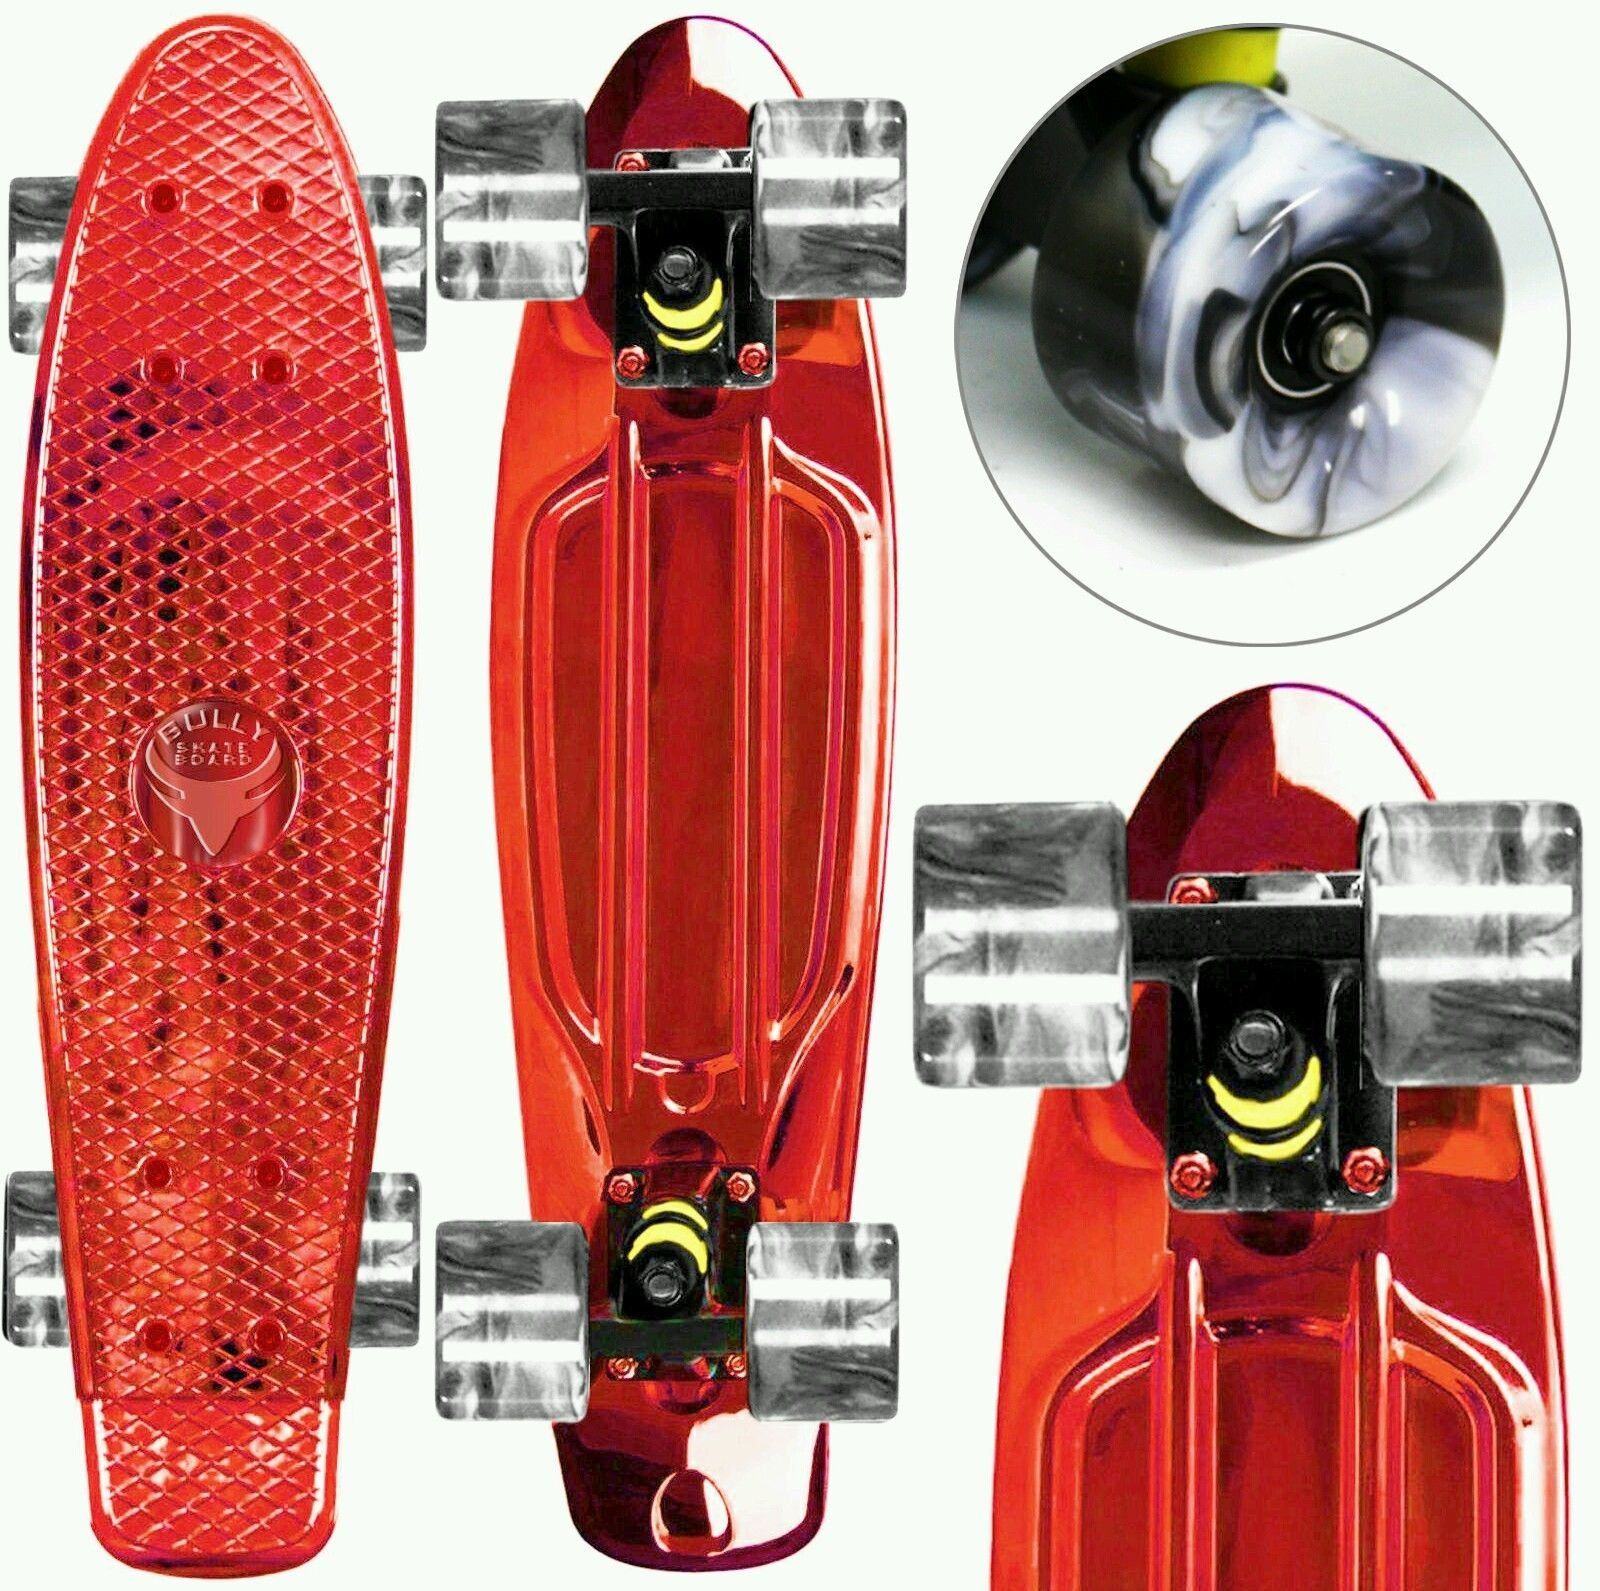 """22"""" Mini Retro Cruiser Skateboard - Anodize Red Swirl Wheels - Complete Board, with Same Day Handling. High Quality made Abec 7 Stainless Steel Bearings. Dimensions: 22 x 6 Inch. Weight 4.5 Lbs. Compact. No assembly required - Full complete Skate Board."""